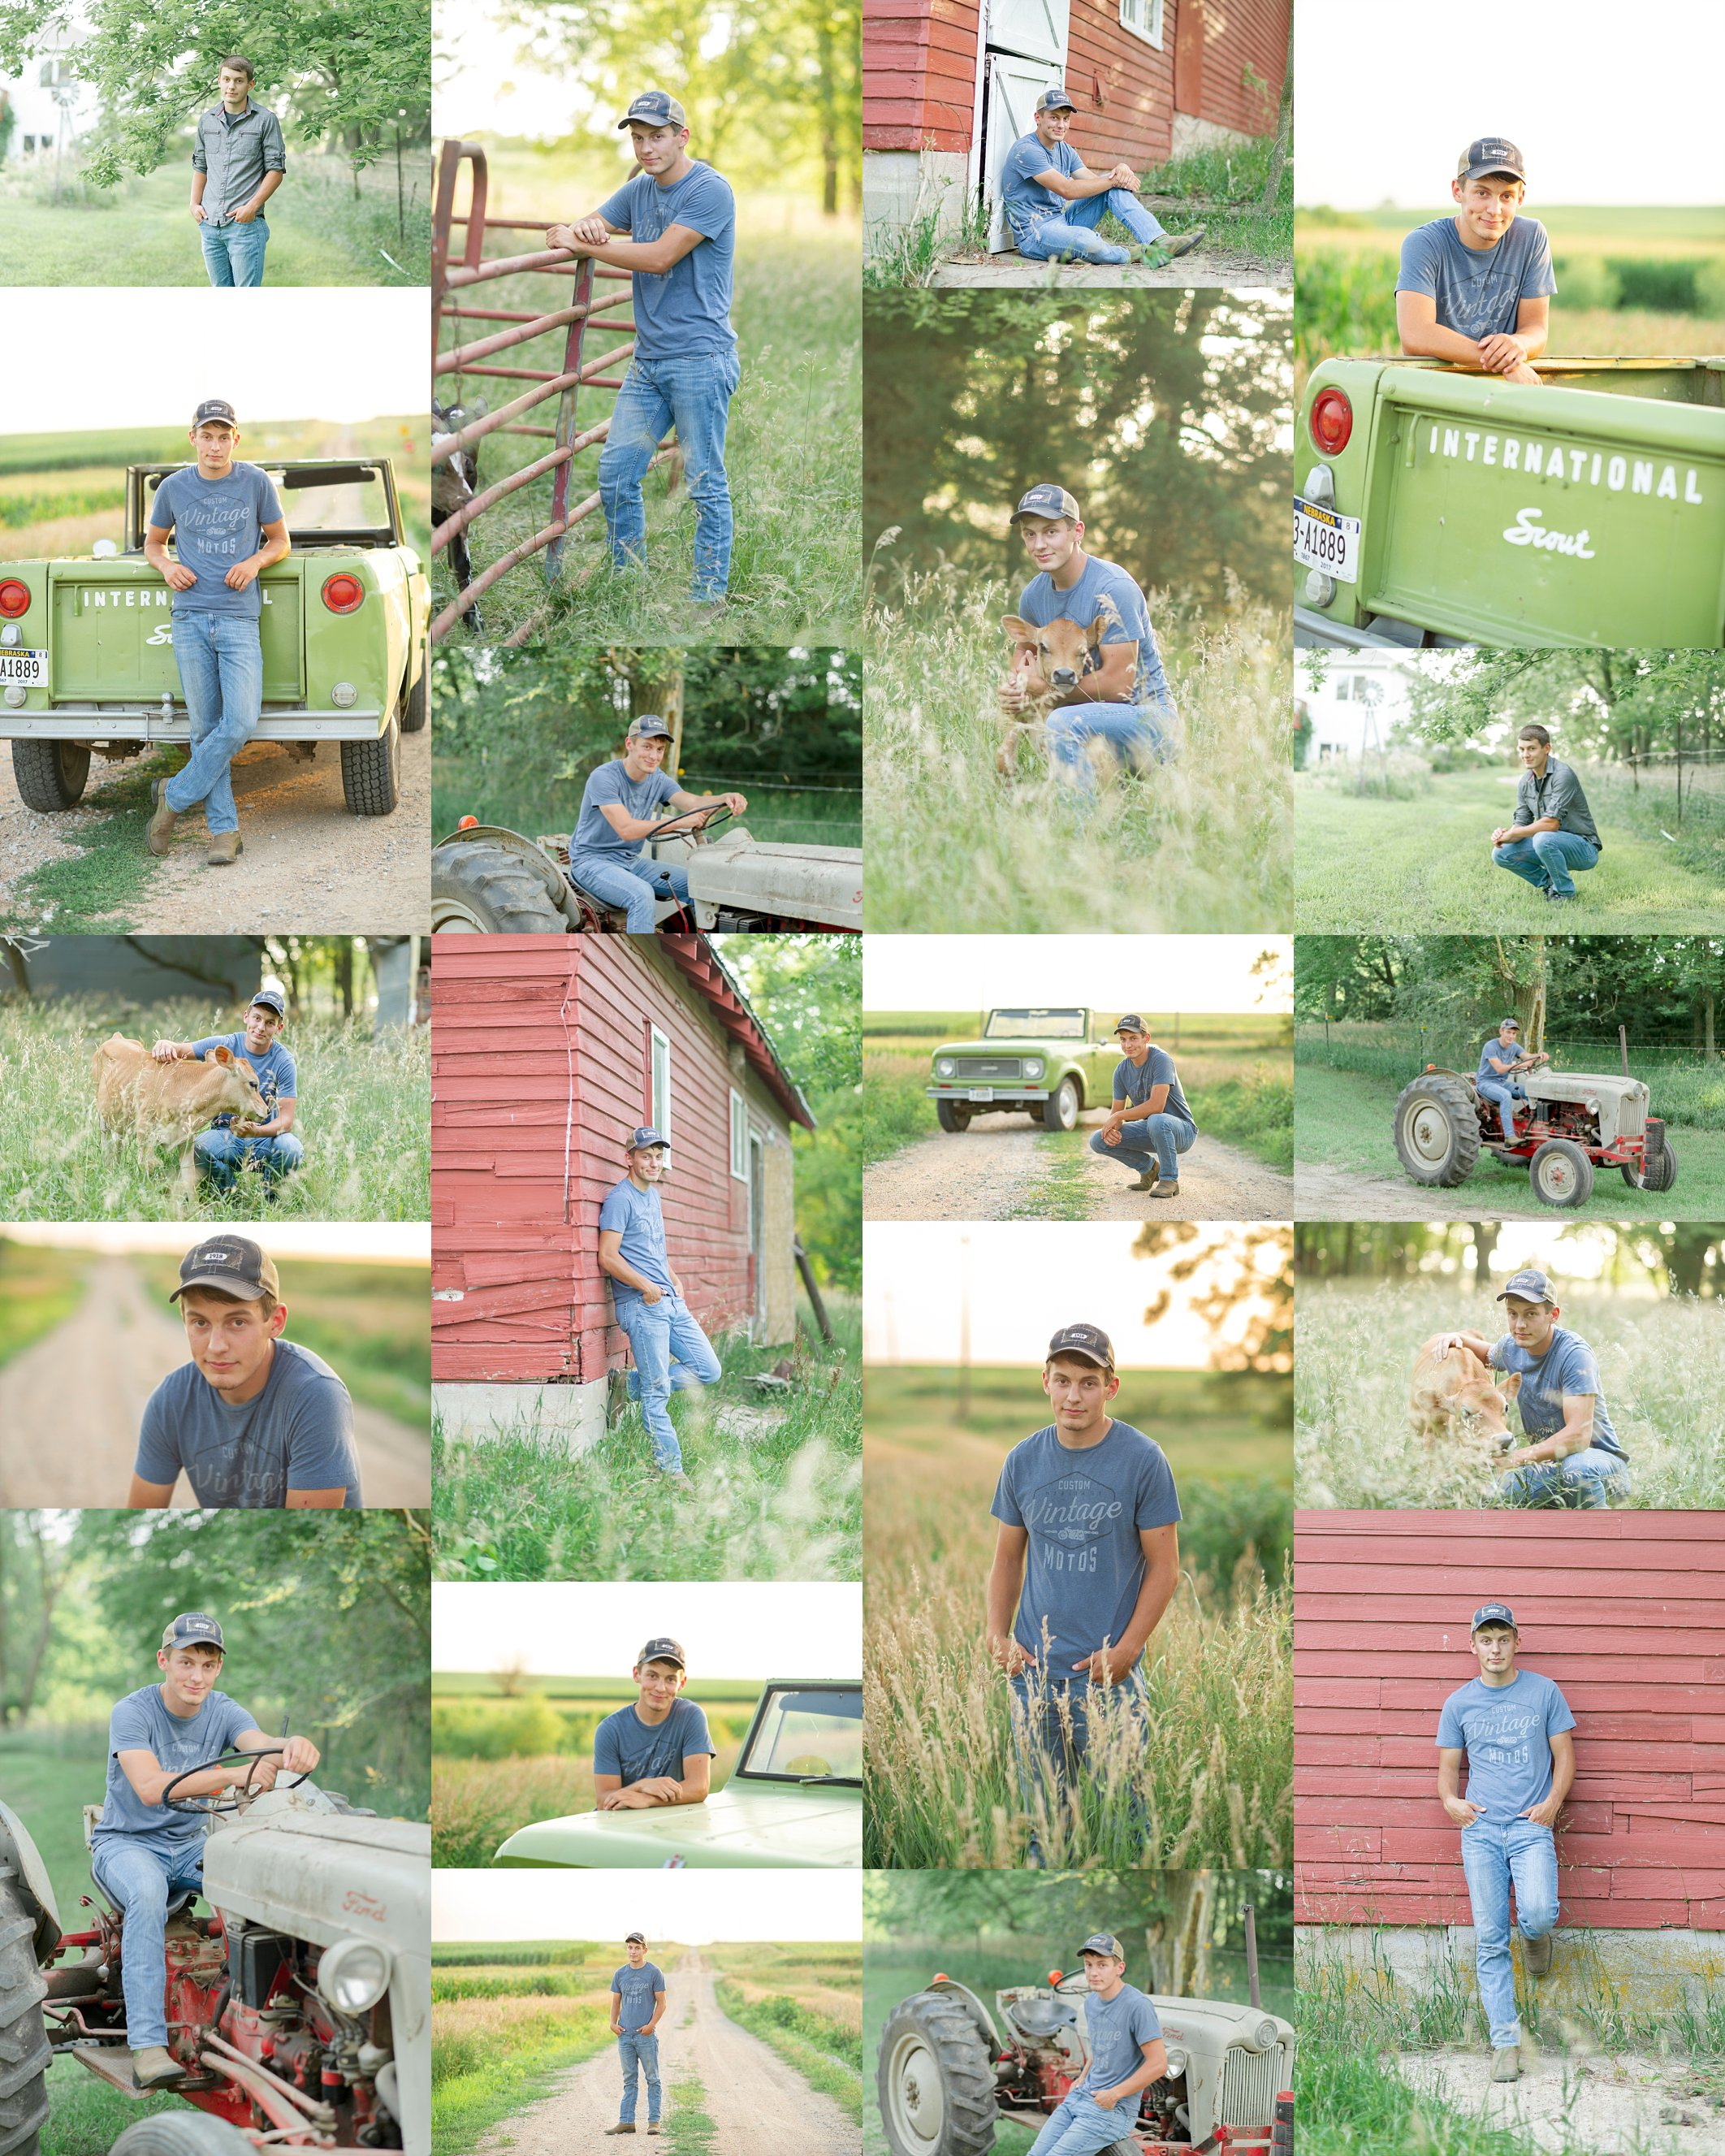 southeast-nebraska-photographer-dirt-road-photography-kelsey-nerud-homolka-farm-photos-senior-boy-portraits-high-school-barn-tractor-grass-cow-scout-truck-dirt-gravel-road-farm-tall-grass-clatonia-wilber-nebraska-sunset-boots-senior-portraits-photos-pictures-baby-calves